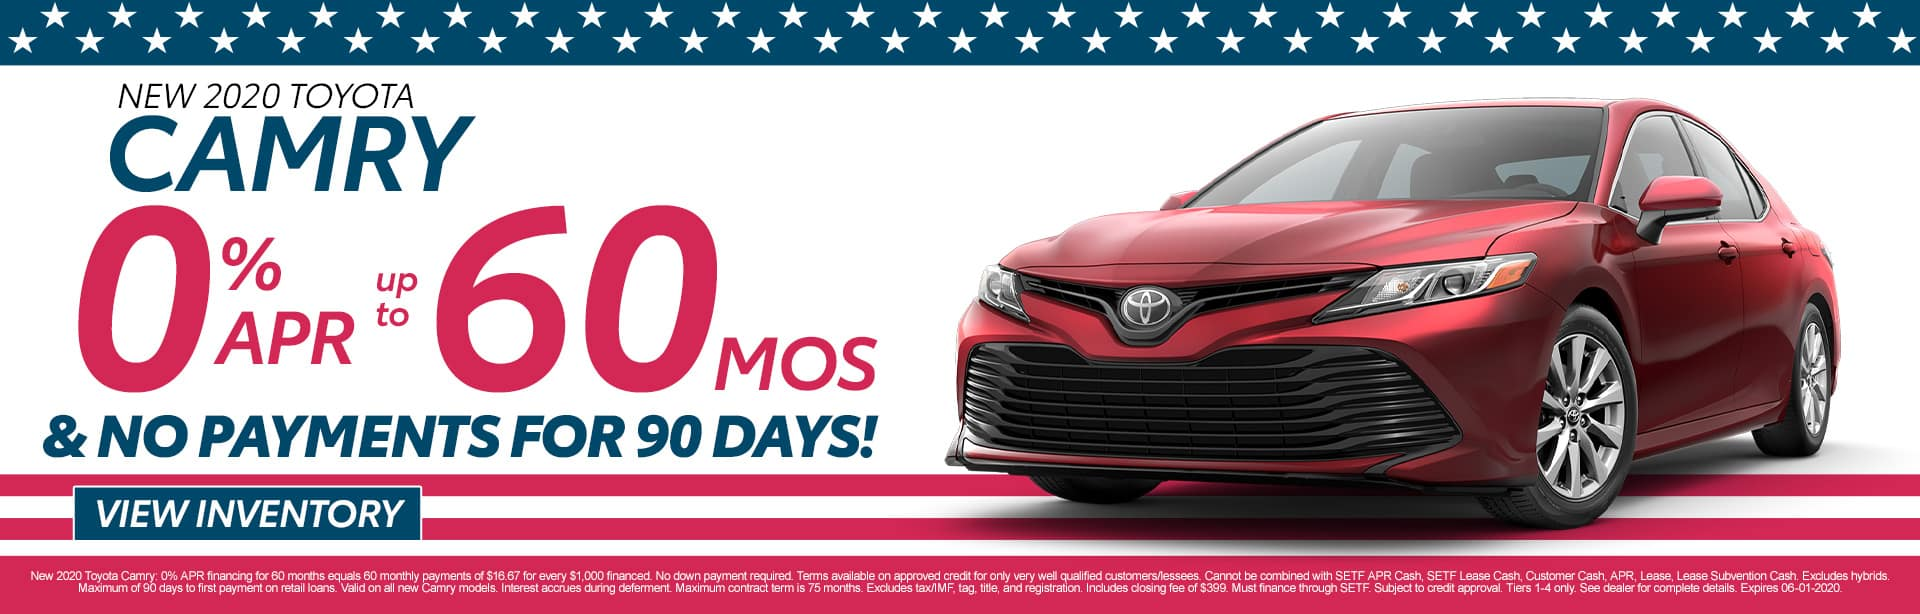 2020 Toyota Camry | 0% APR for 60 Months